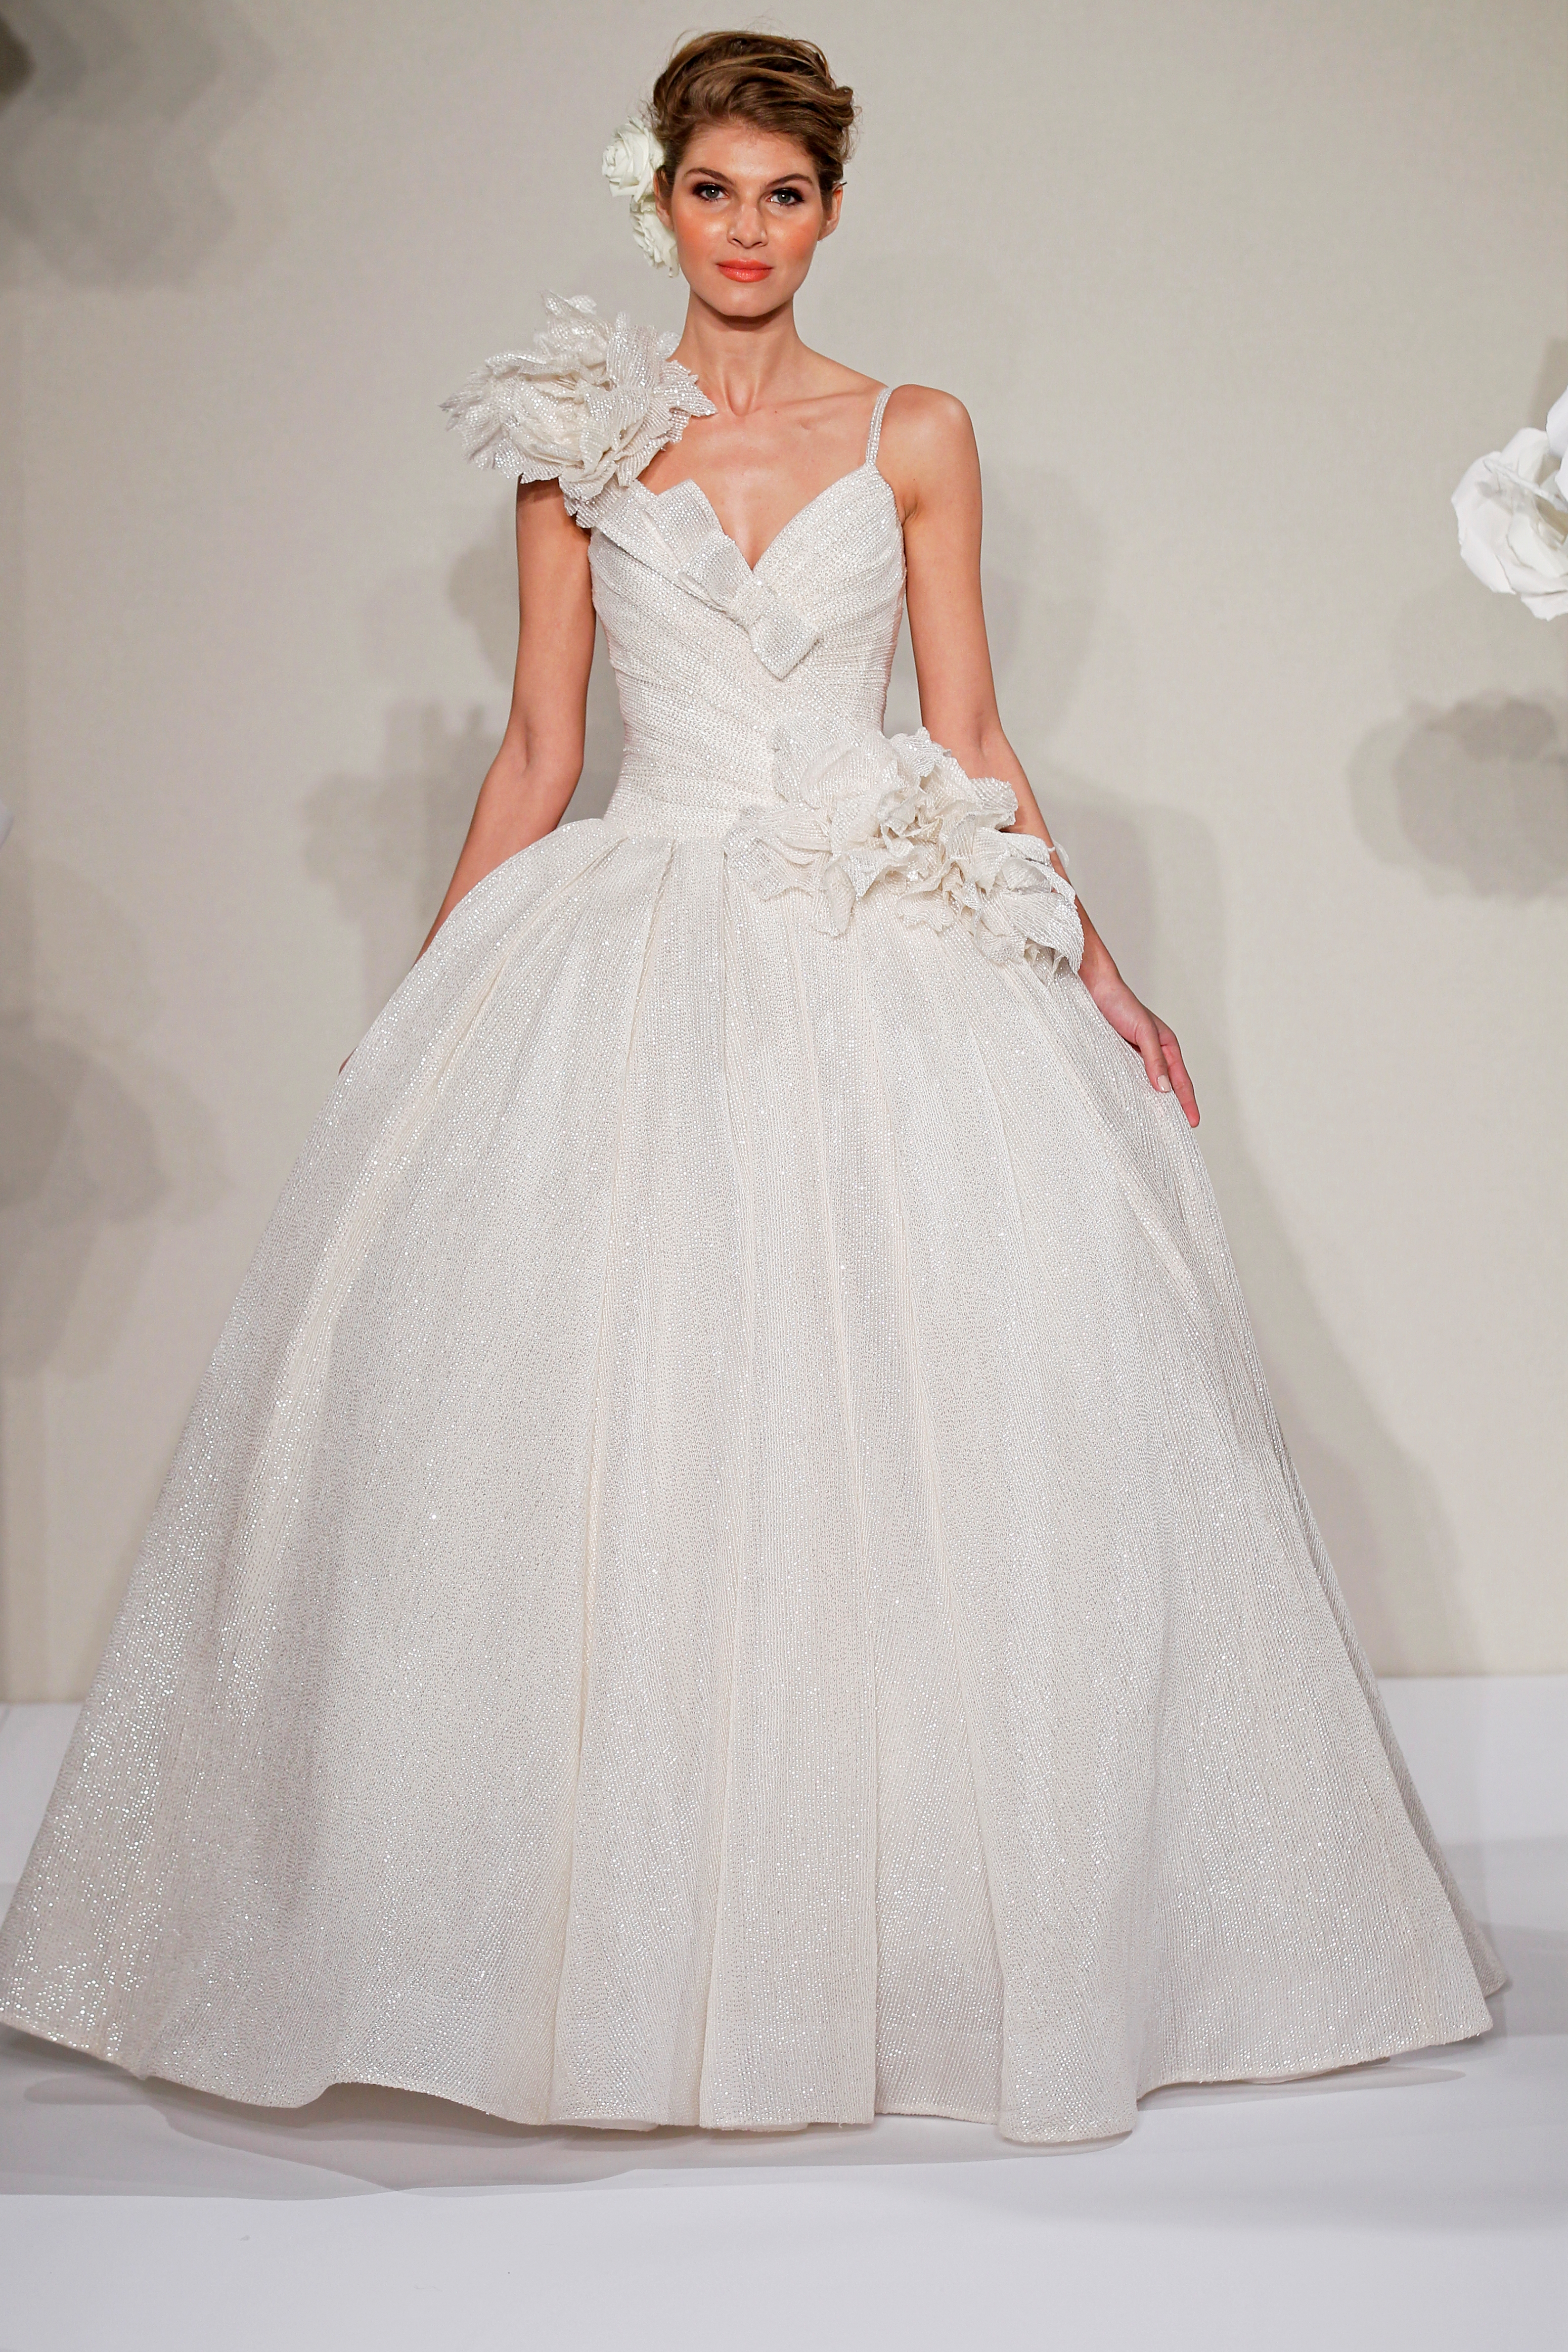 Sweetheart Ball Gown in Silk This ball gown features a